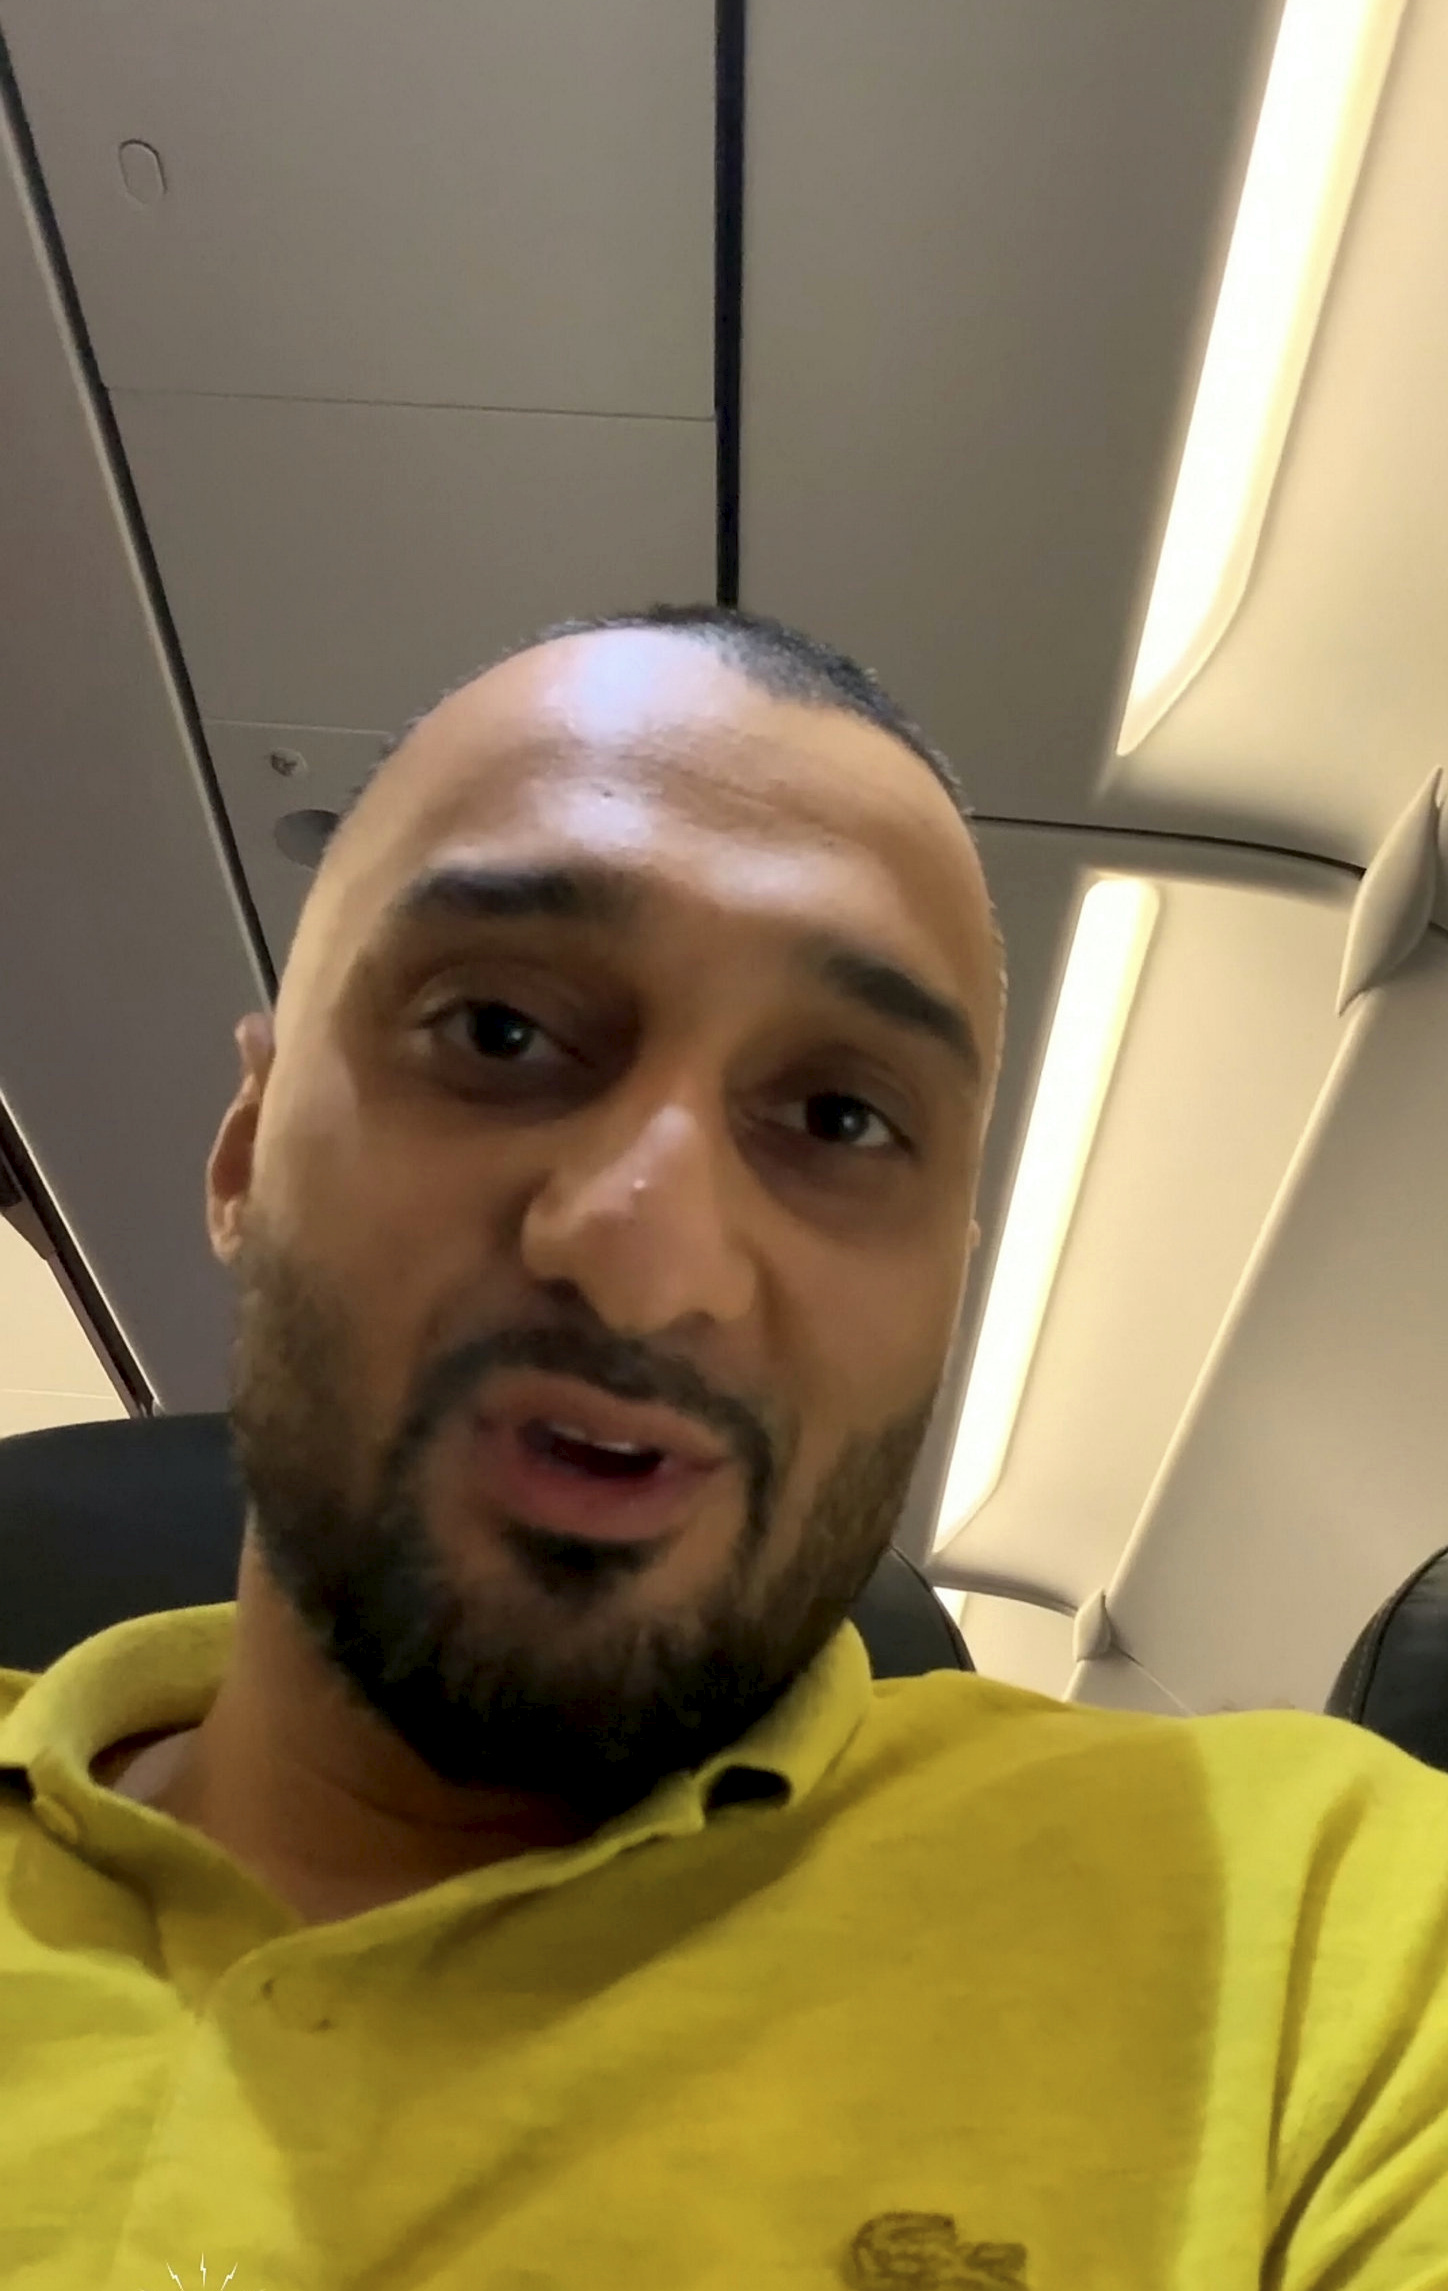 Passenger Accuses Easyjet Of Racial Profiling After